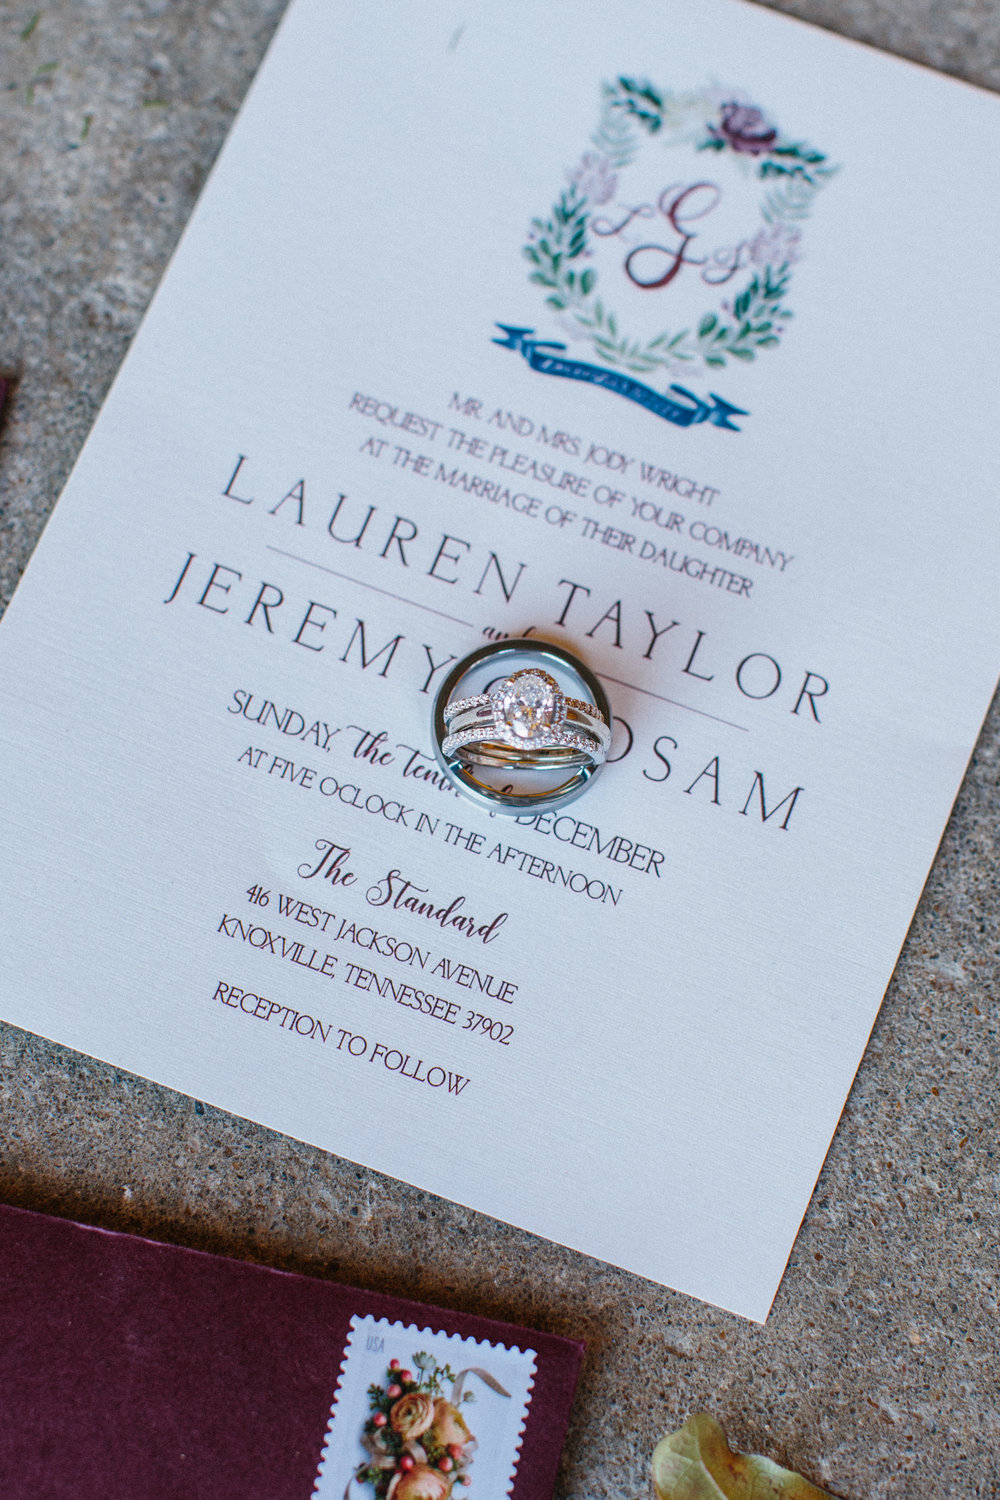 Lauren_Jeremy_Standard_Wedding_Knoxville_Abigail_Malone_Photography_FIlm-23.jpg